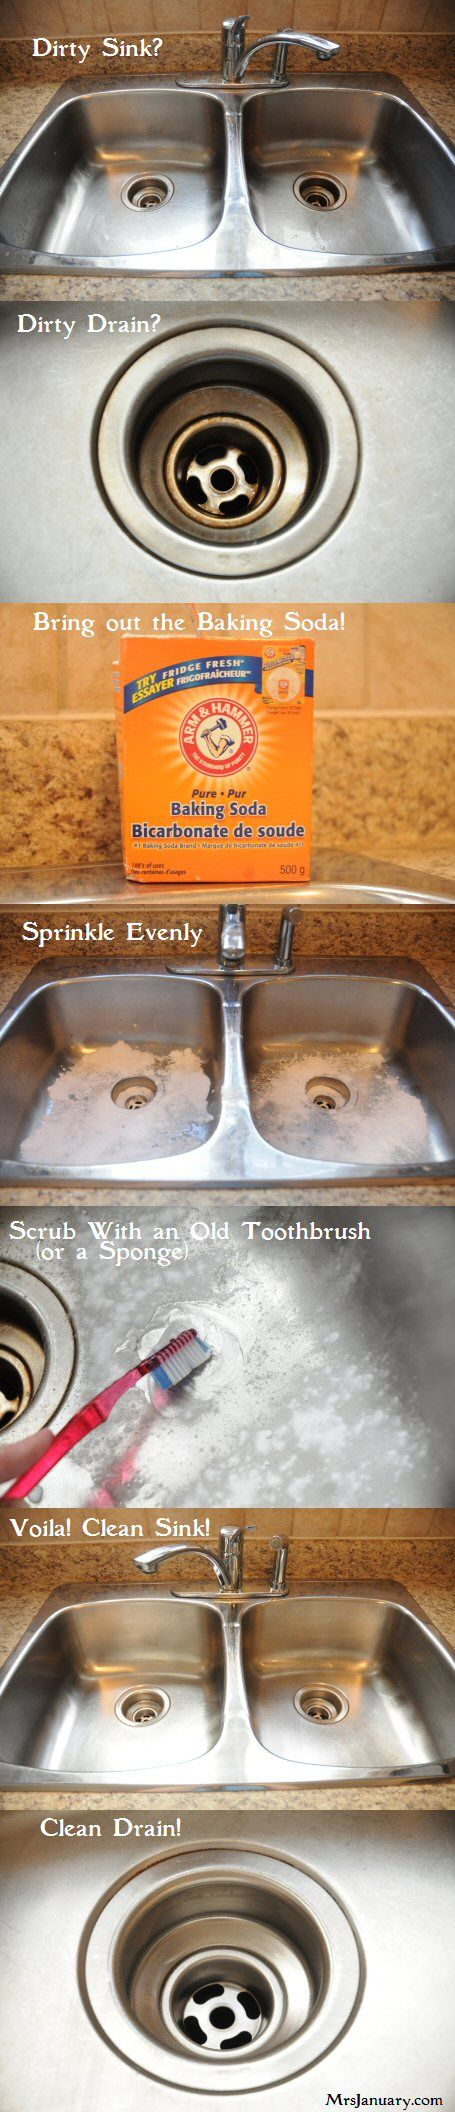 stainless steel kitchen sinks deep kitchen sinks 40 Ways To Make Your Entire Kitchen Cleaner Than It s Ever Been